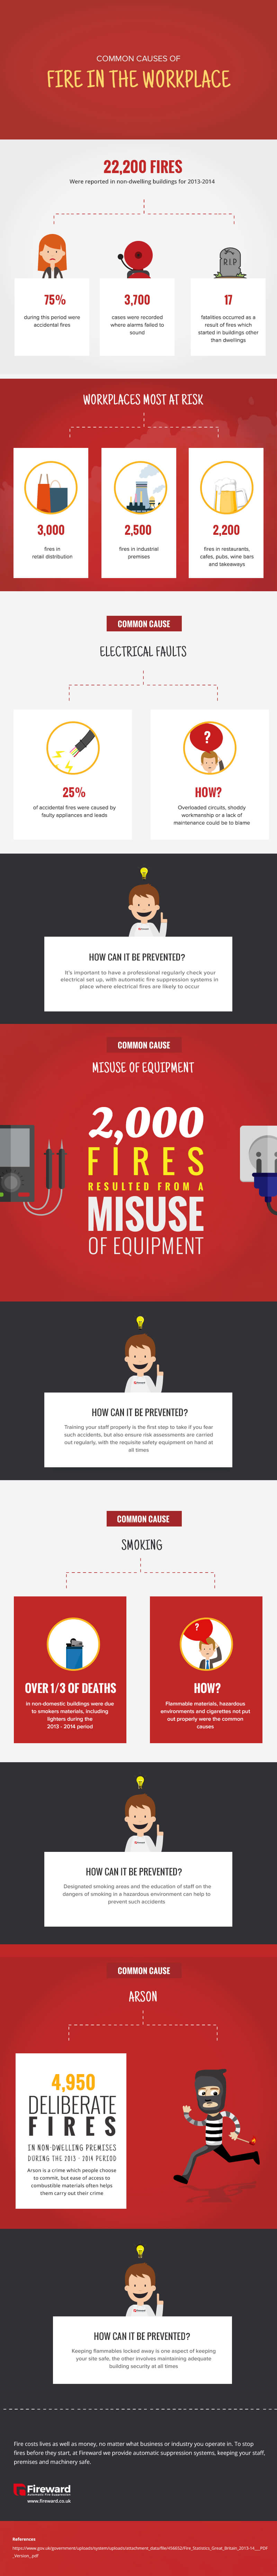 Common-causes-of-fire-in-the-workplace-infographic-plaza